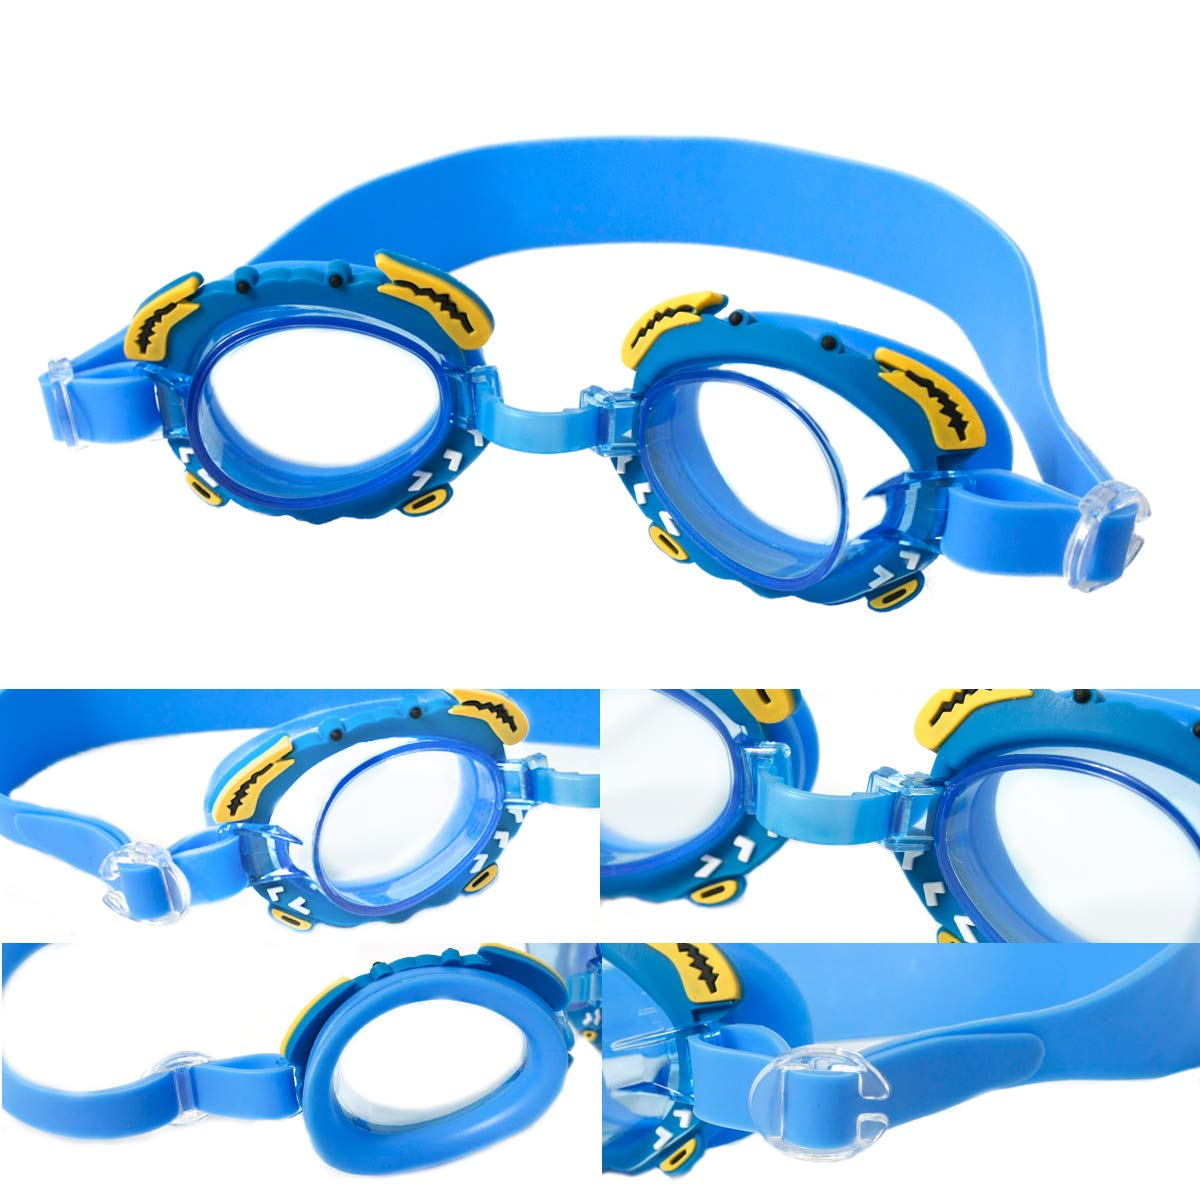 Swim Goggles For Kids | Mirrored Swimming Goggles No Leaking Anti Fog UV Protection - Free Protection Easy Adjustment With Cartoon Waterproof Swim Cap With Nose Clip, Ear Plugs and Carry Bag by Doc&Good Inc. (Image #1)